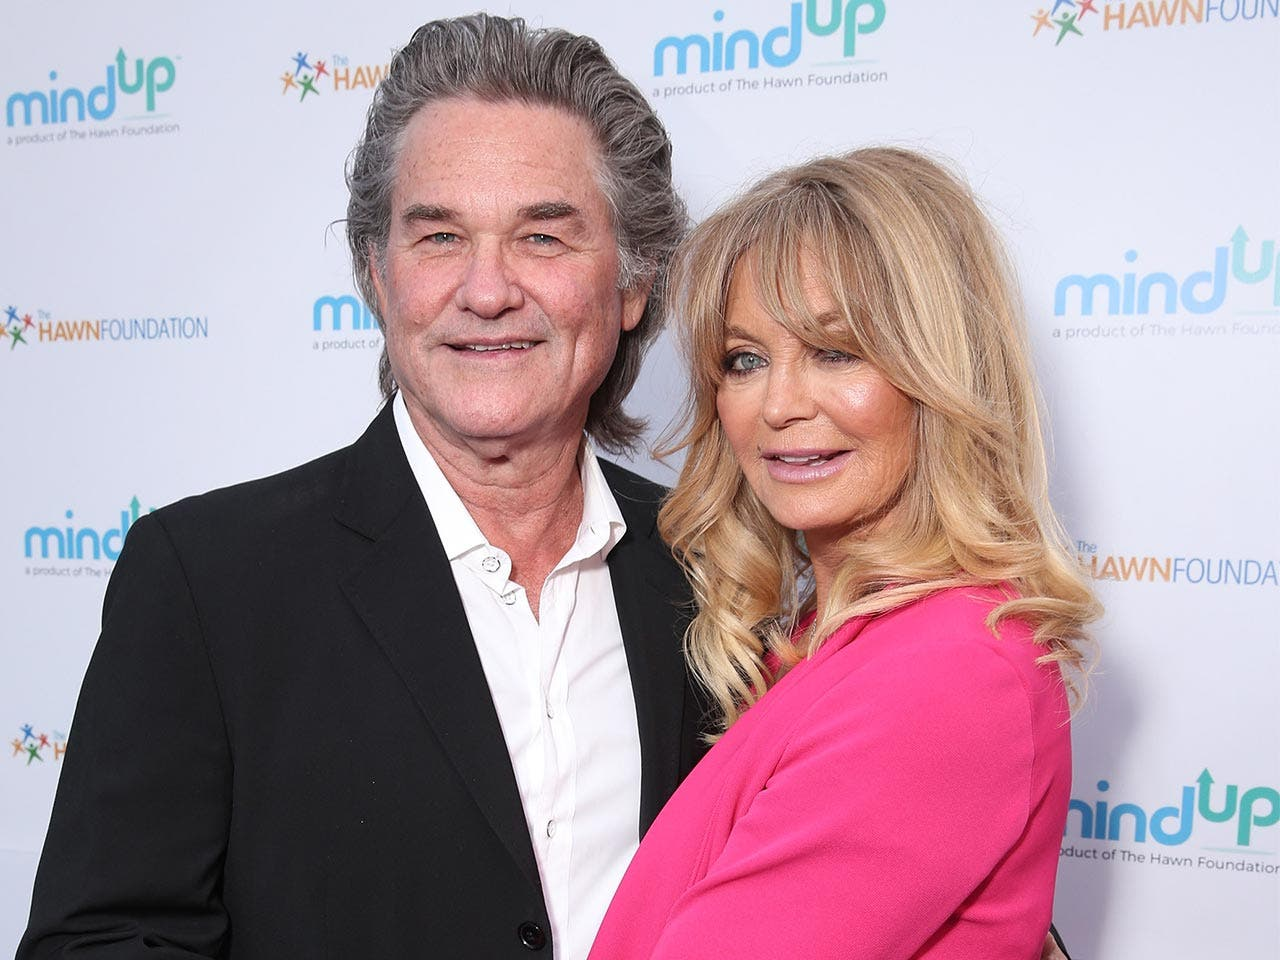 Kurt Russell and Goldie Hawn | Todd Williamson/Getty Images